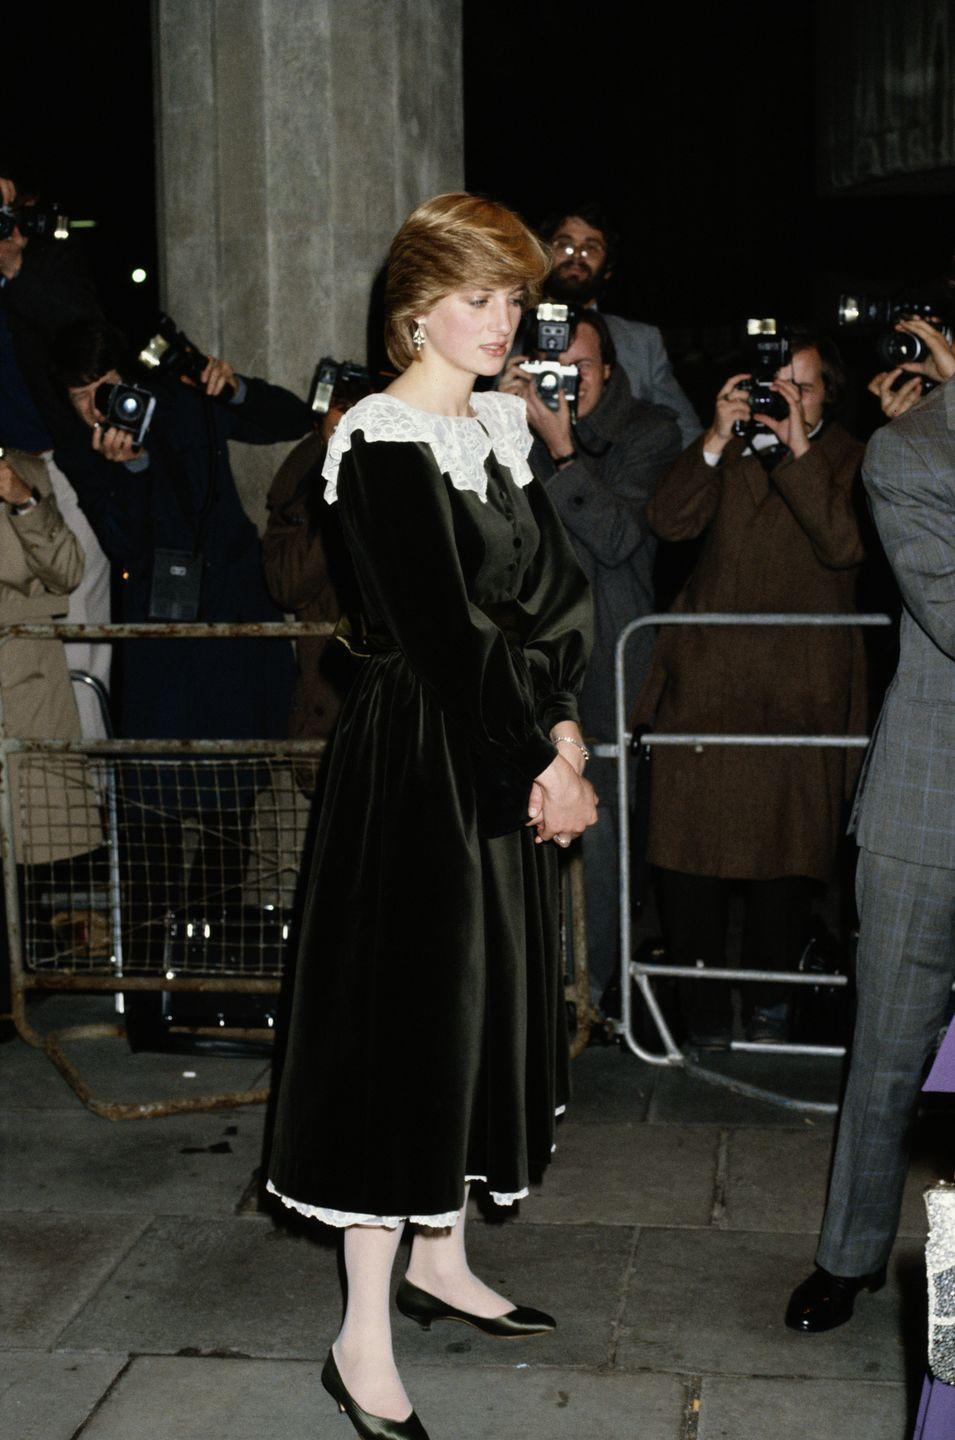 <p>Princess Diana, wearing a velvet Gina Frattini dress with a lace pilgrim neckline, at the National Film Theatre on the South Bank in London, November 1981.</p>